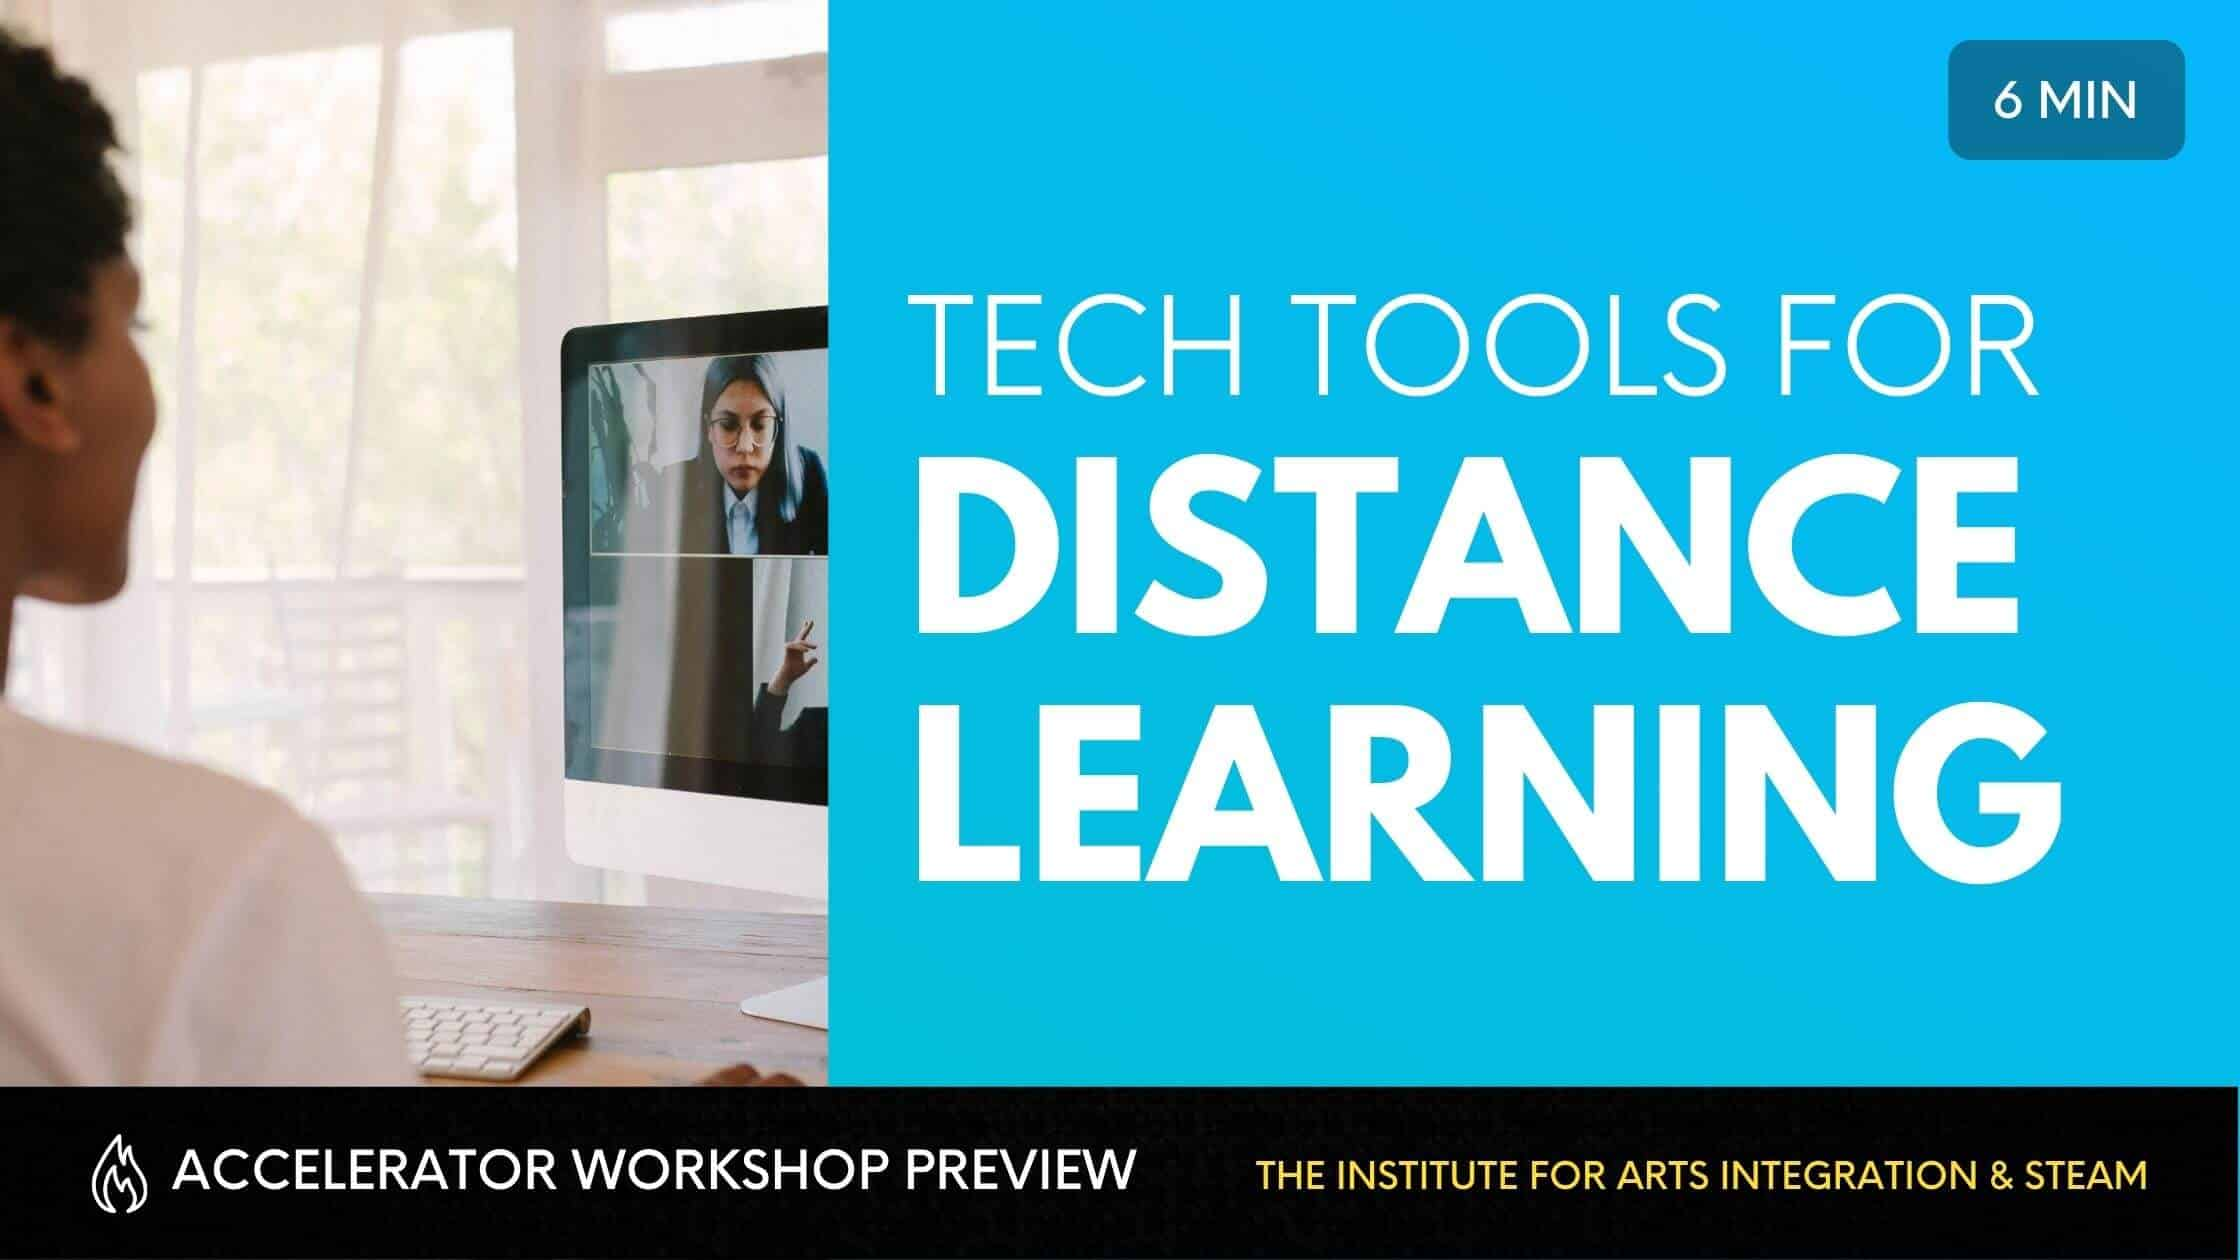 TECH TOOLS FOR DISTANCE LEARNING